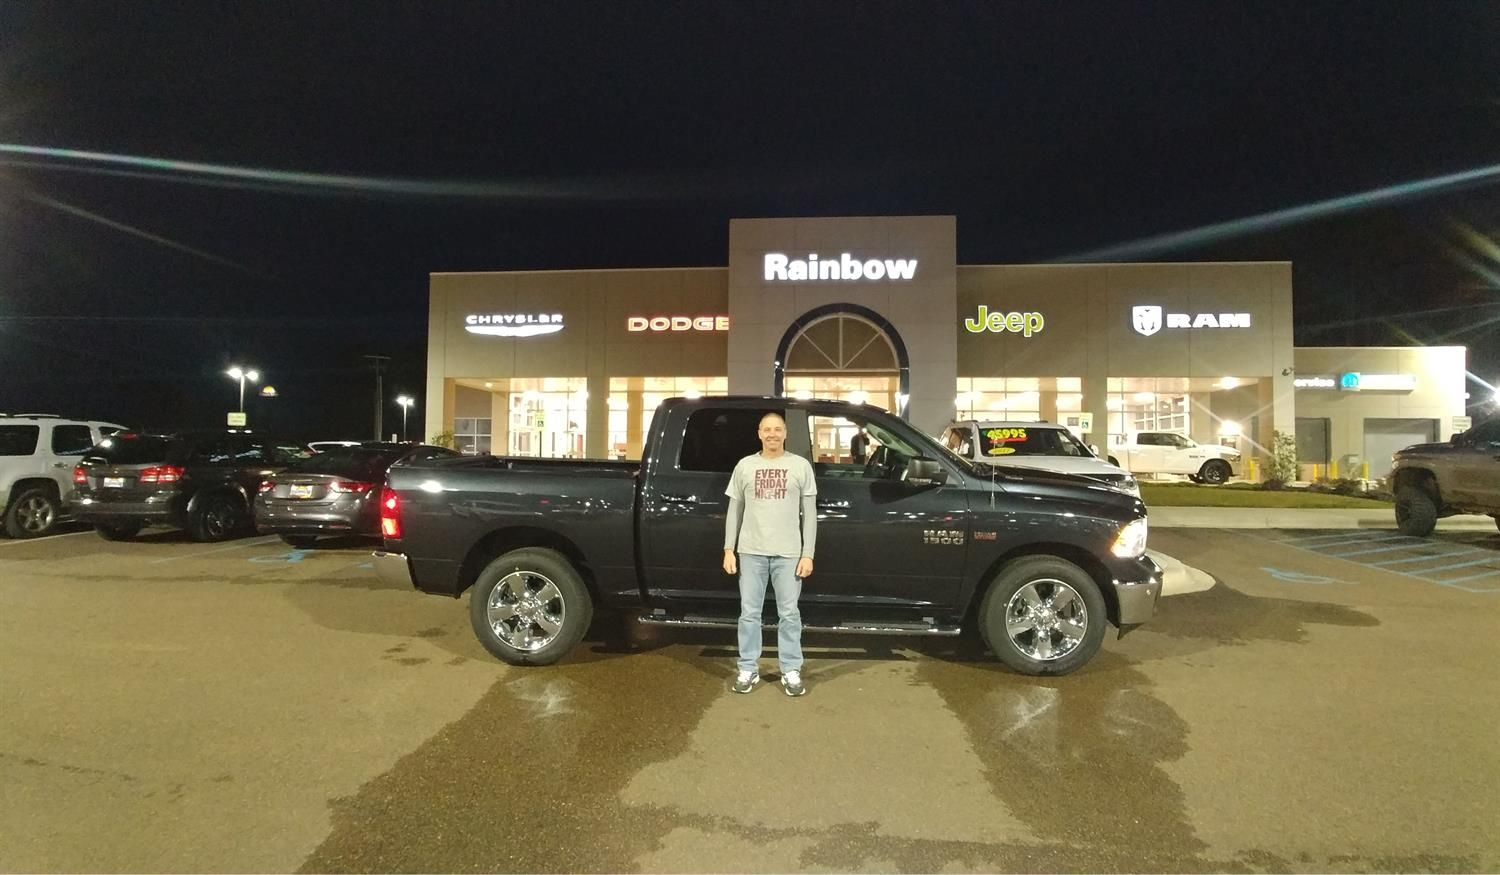 Exceptional Thank You, Lisa And David For The Opportunity To Help You With Your New  2017 RAM All The Best, Rainbow Chrysler Dodge Jeep Ram And FORREST DIDON.